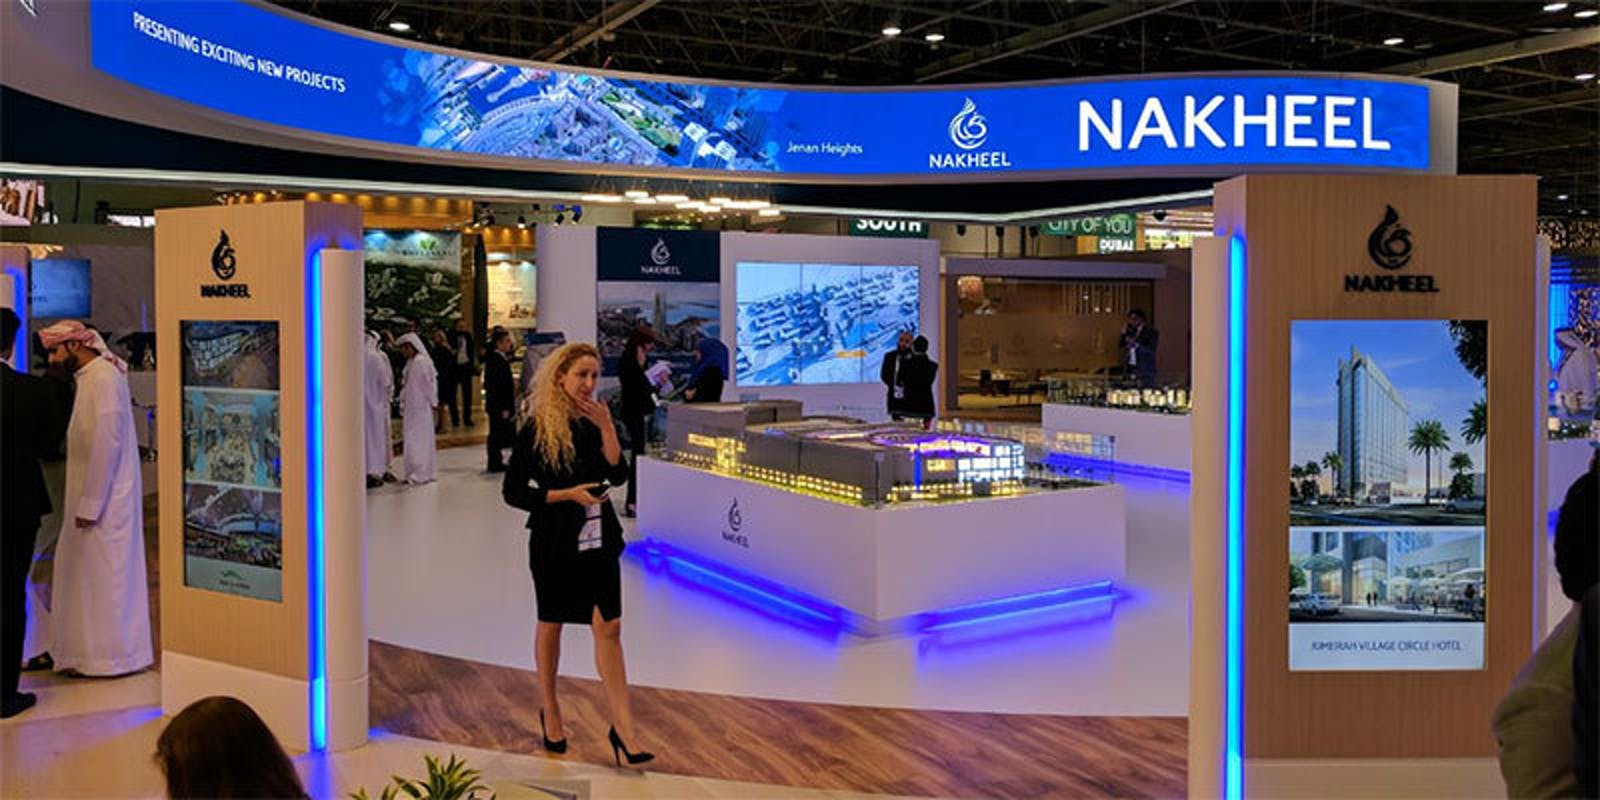 Nakheel interactive at Cityscape event